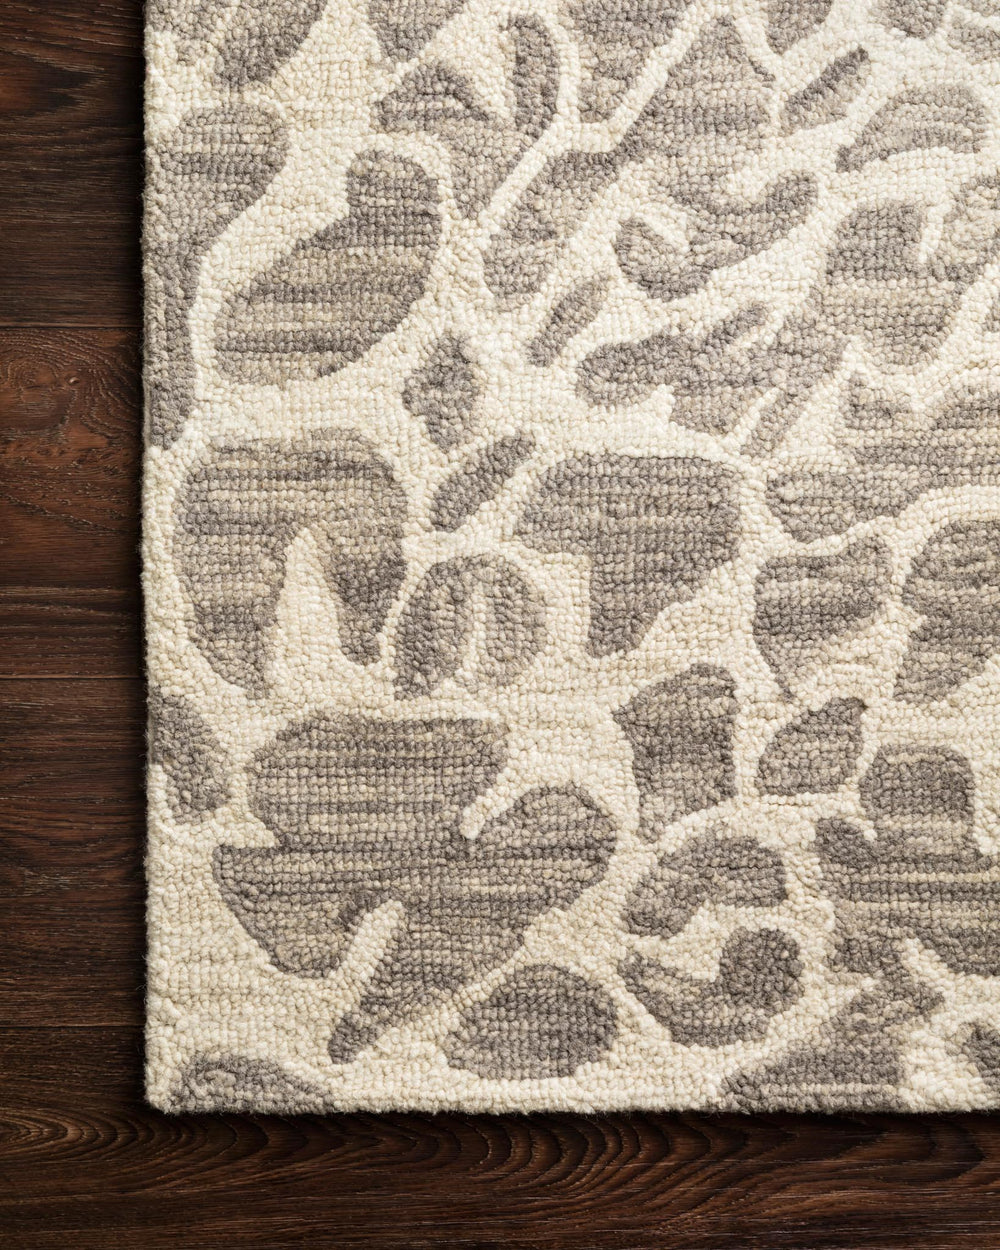 Hooked of 100% wool, this Masai Collection is a softer side of the savannah brought to life by artisans in India. Masai is a beautiful contemporary rug with contrasting hues and is a chic twist on the classic animal print.  Hooked 100% Wool MAS-02 Grey / Ivory